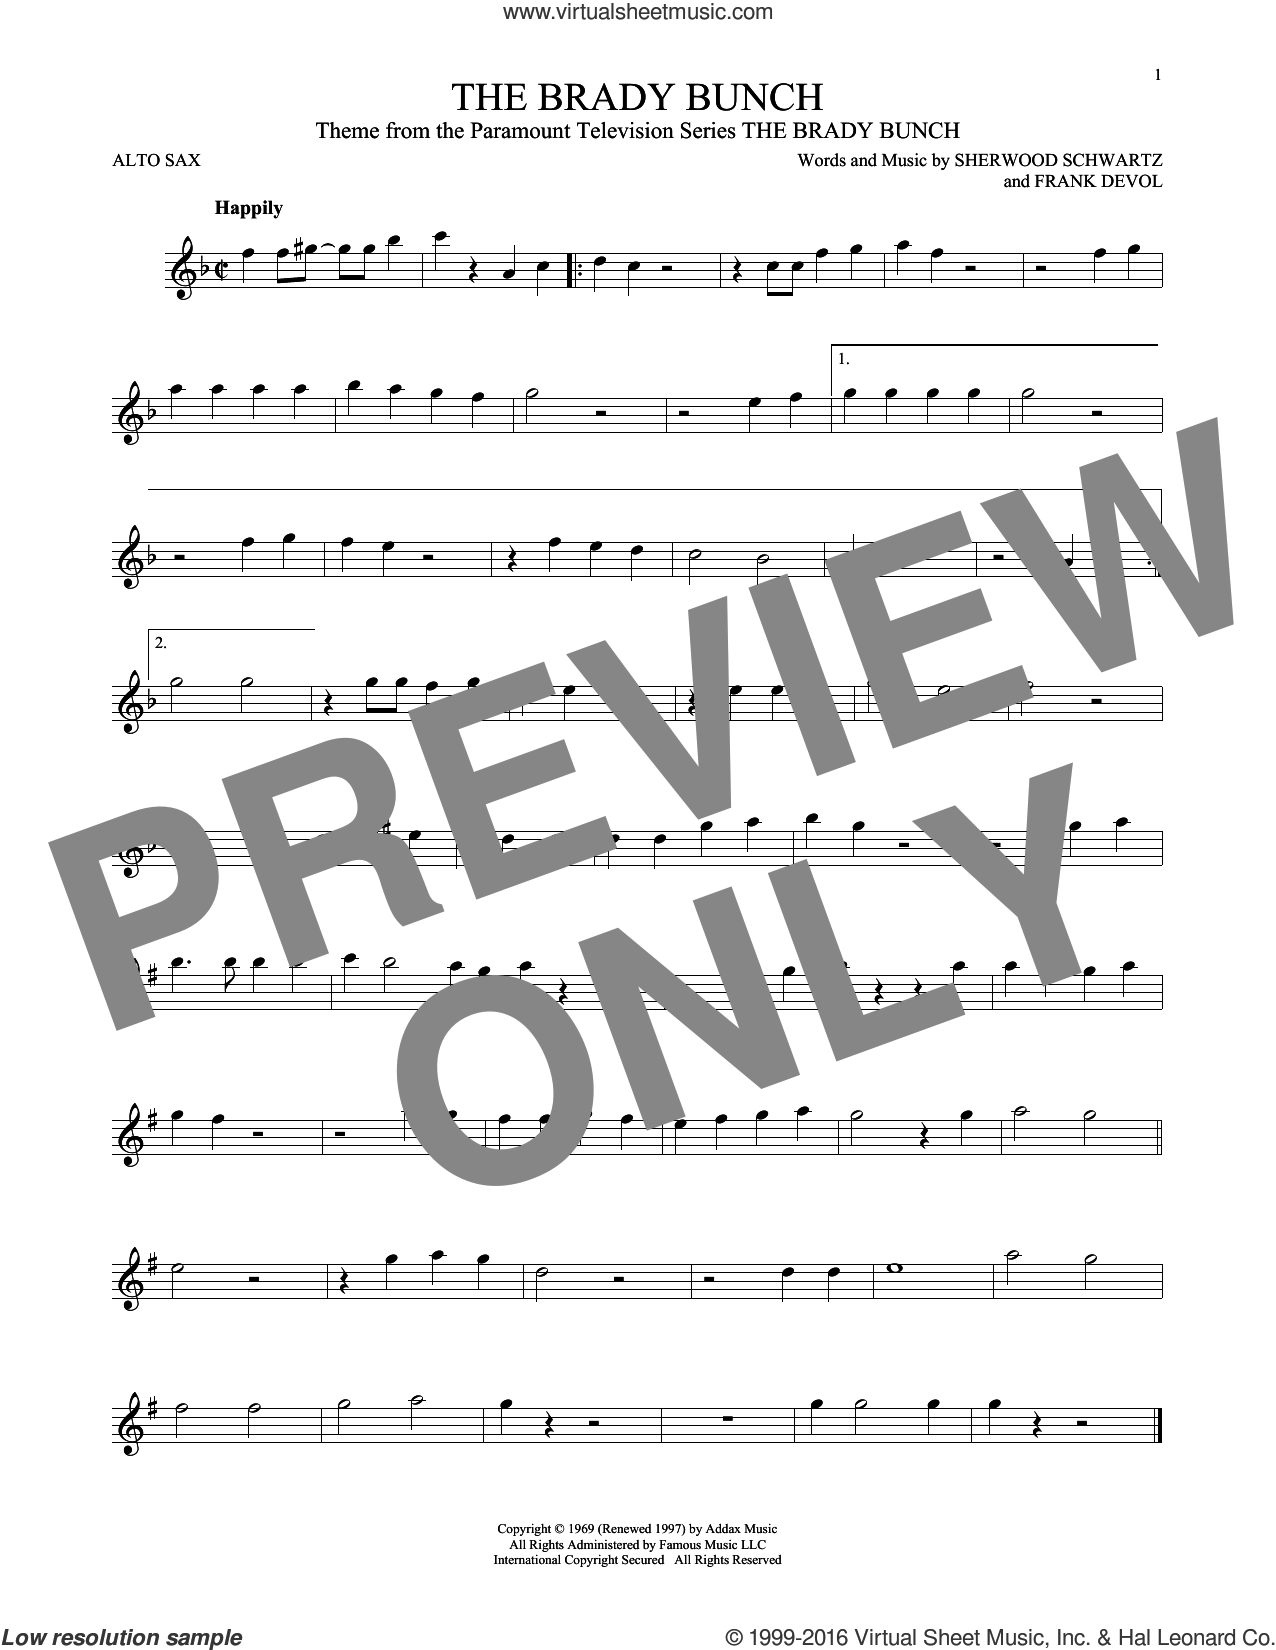 The Brady Bunch sheet music for alto saxophone solo by Sherwood Schwartz